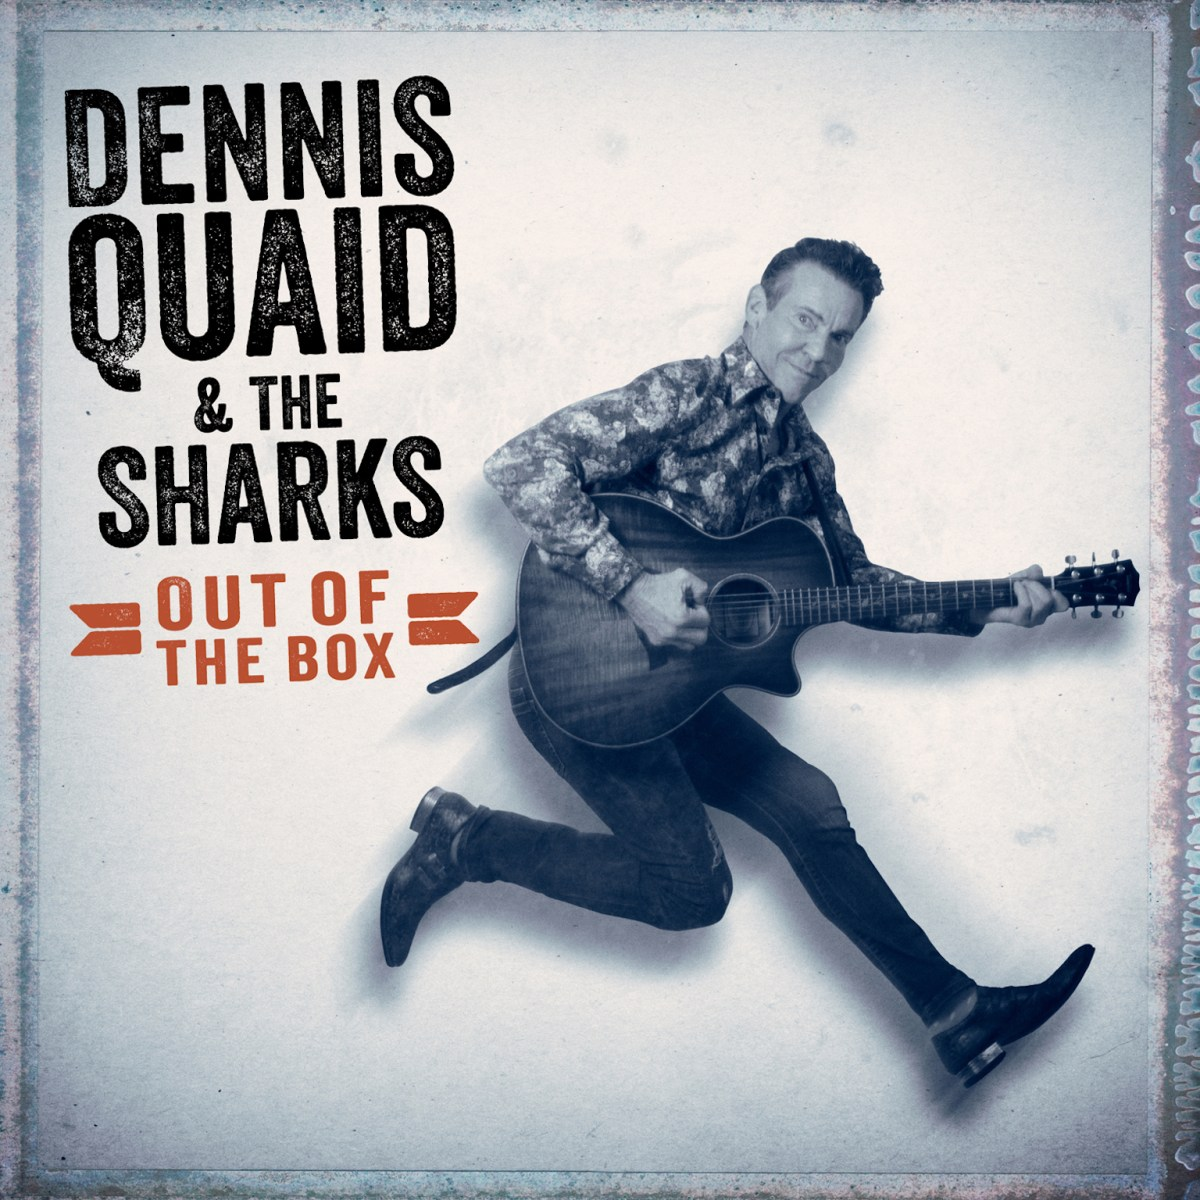 Dennis Quaid & The Sharks | Out Of The Box